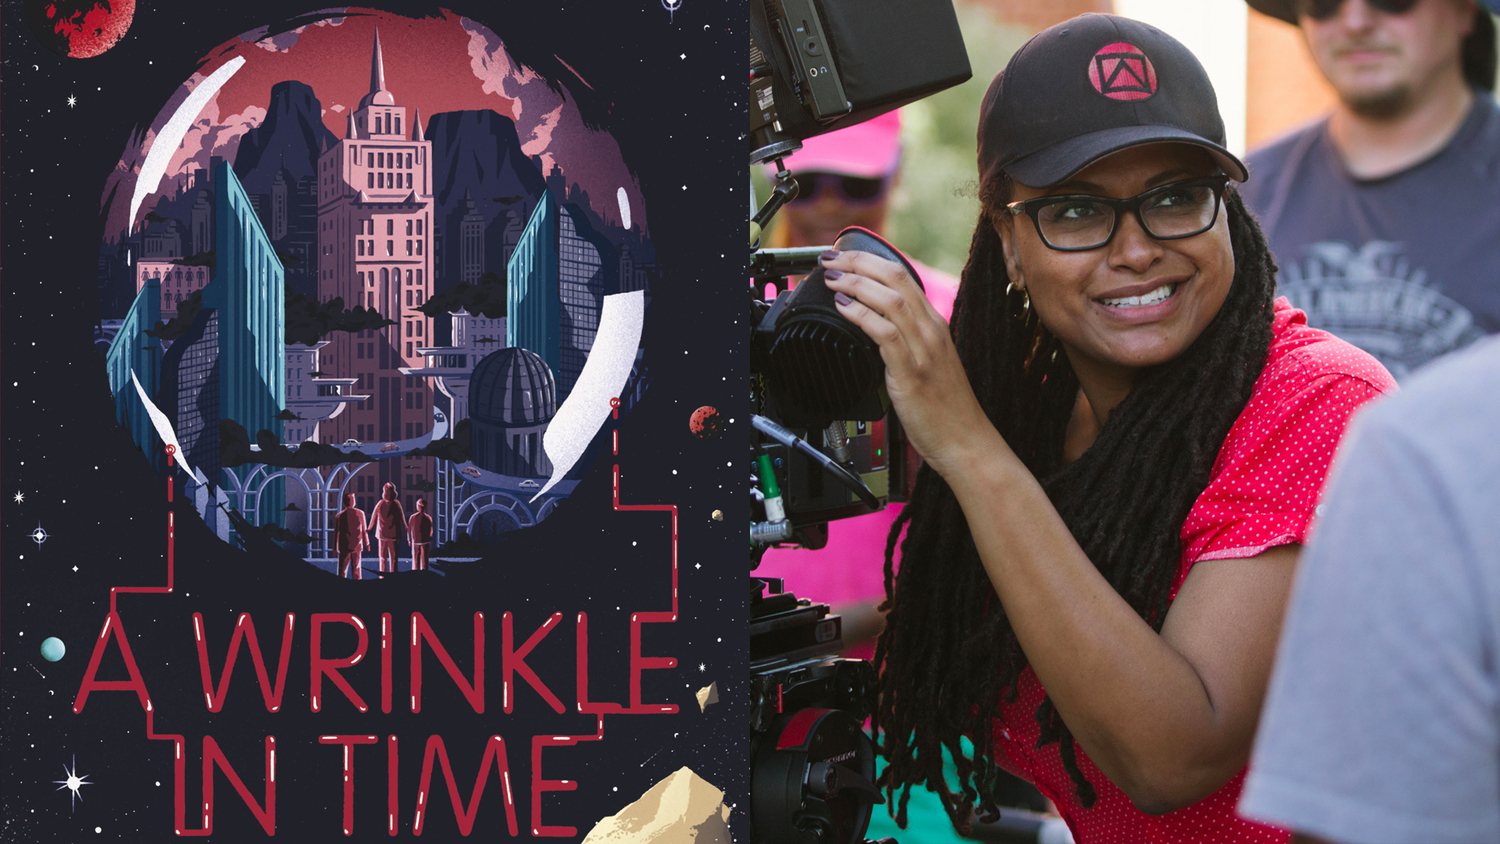 a wrinkle in time ava duvernay